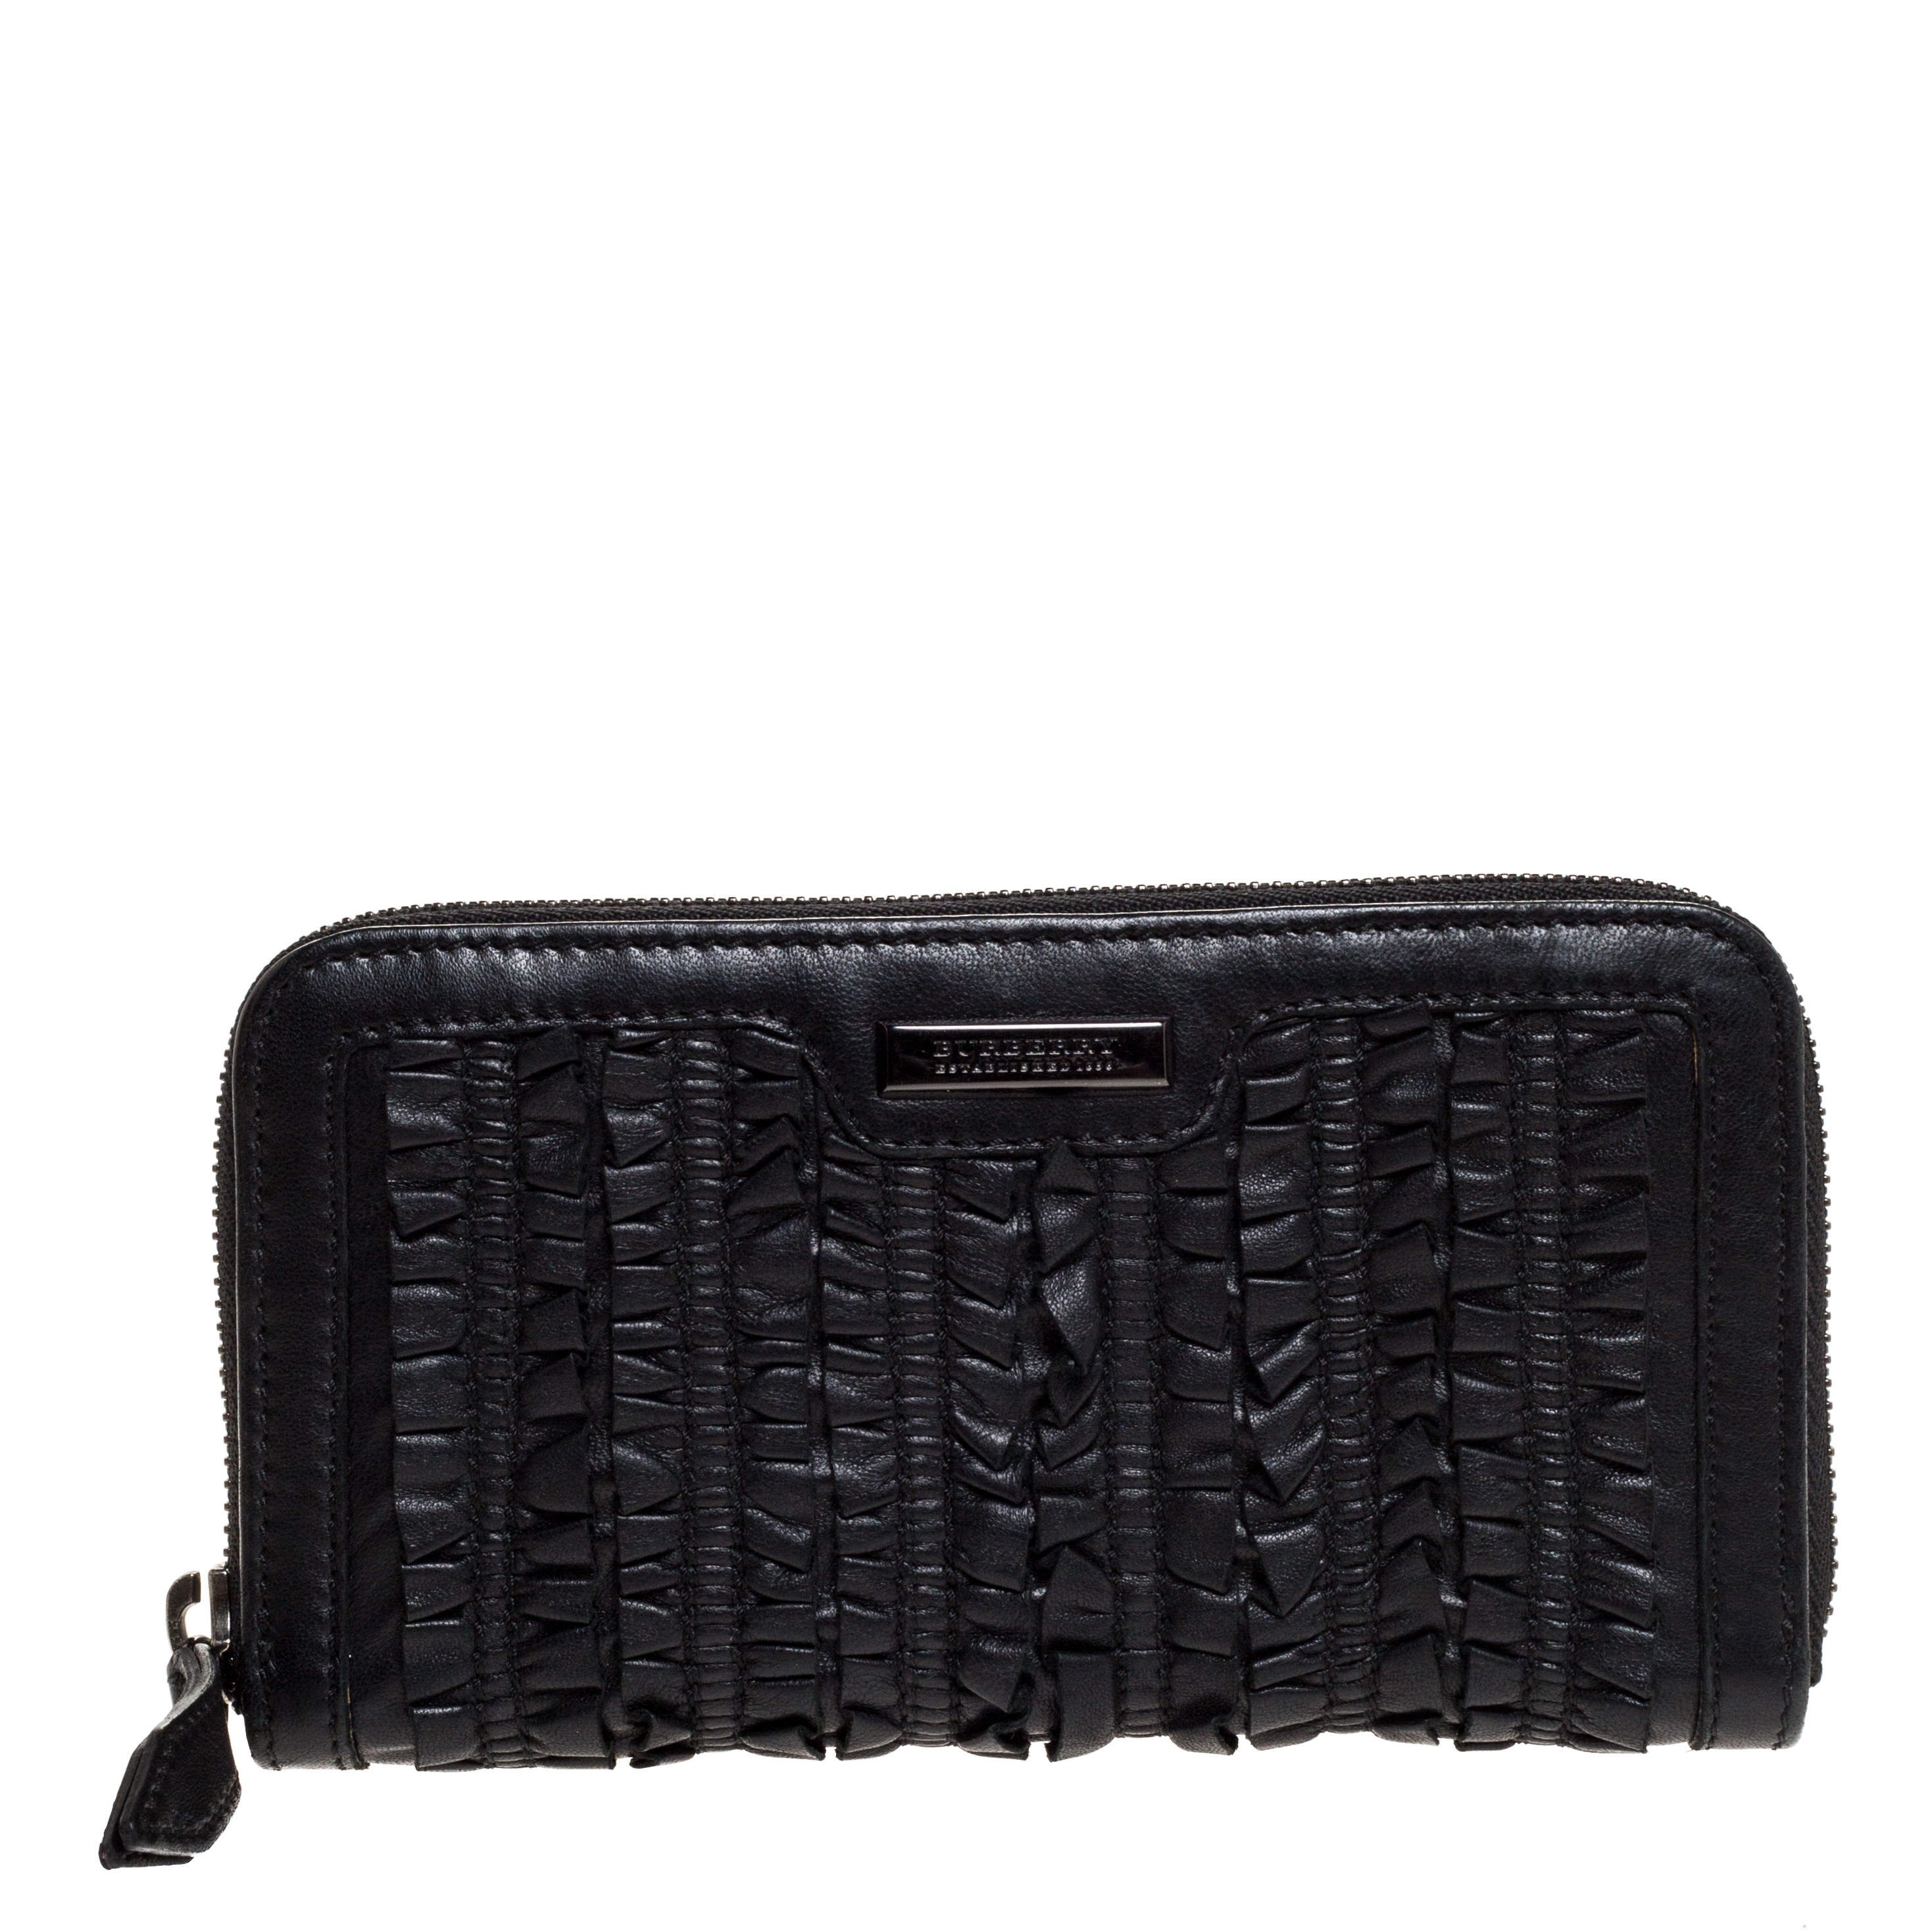 Burberry Black Ruffle Leather Zip Around Wallet